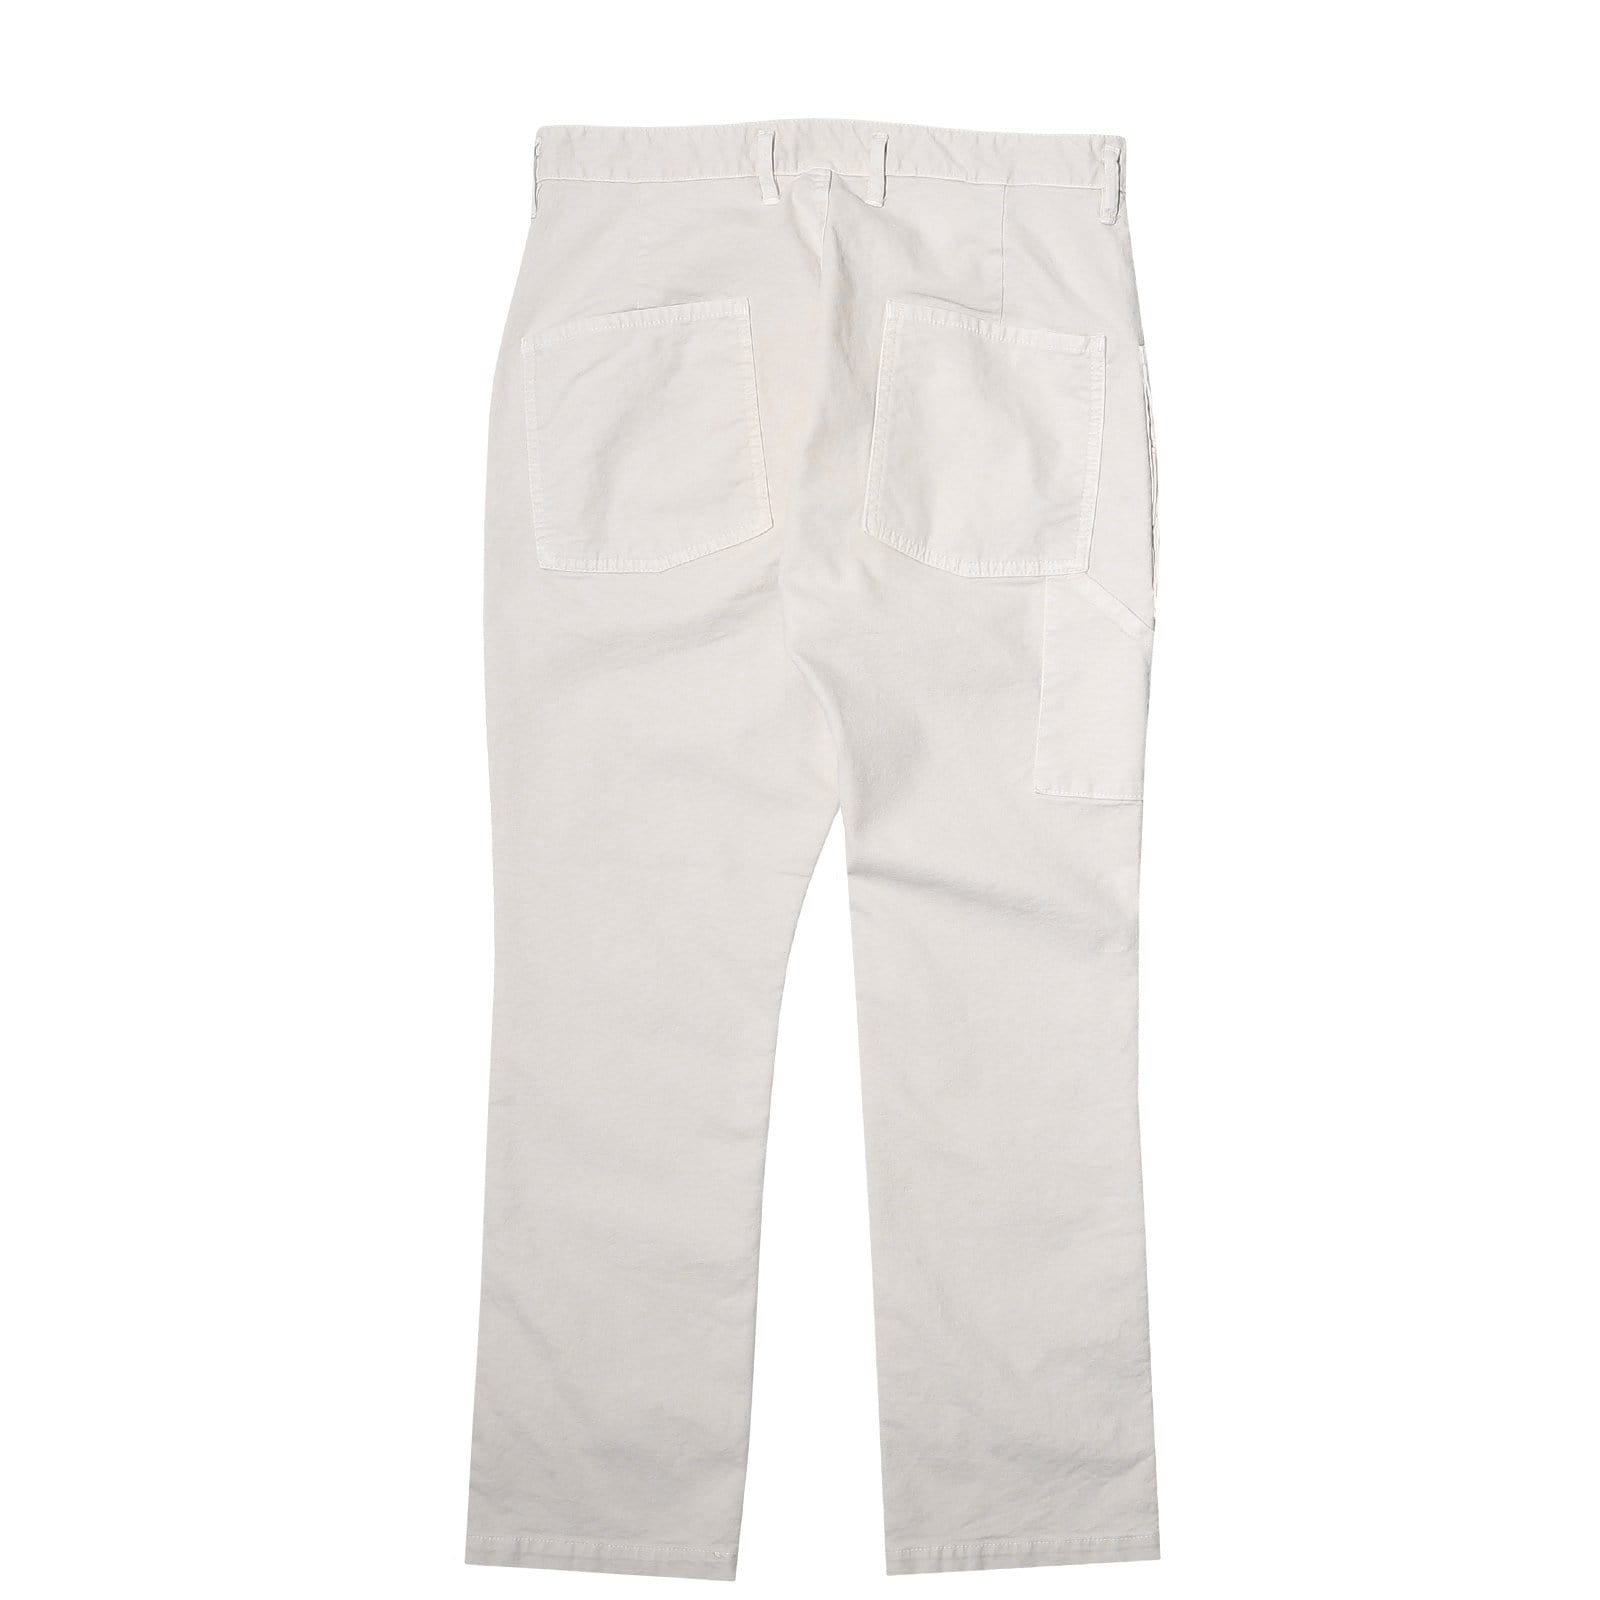 NONNATIVE GARDENER TROUSERS RELAXED FIT SAIL